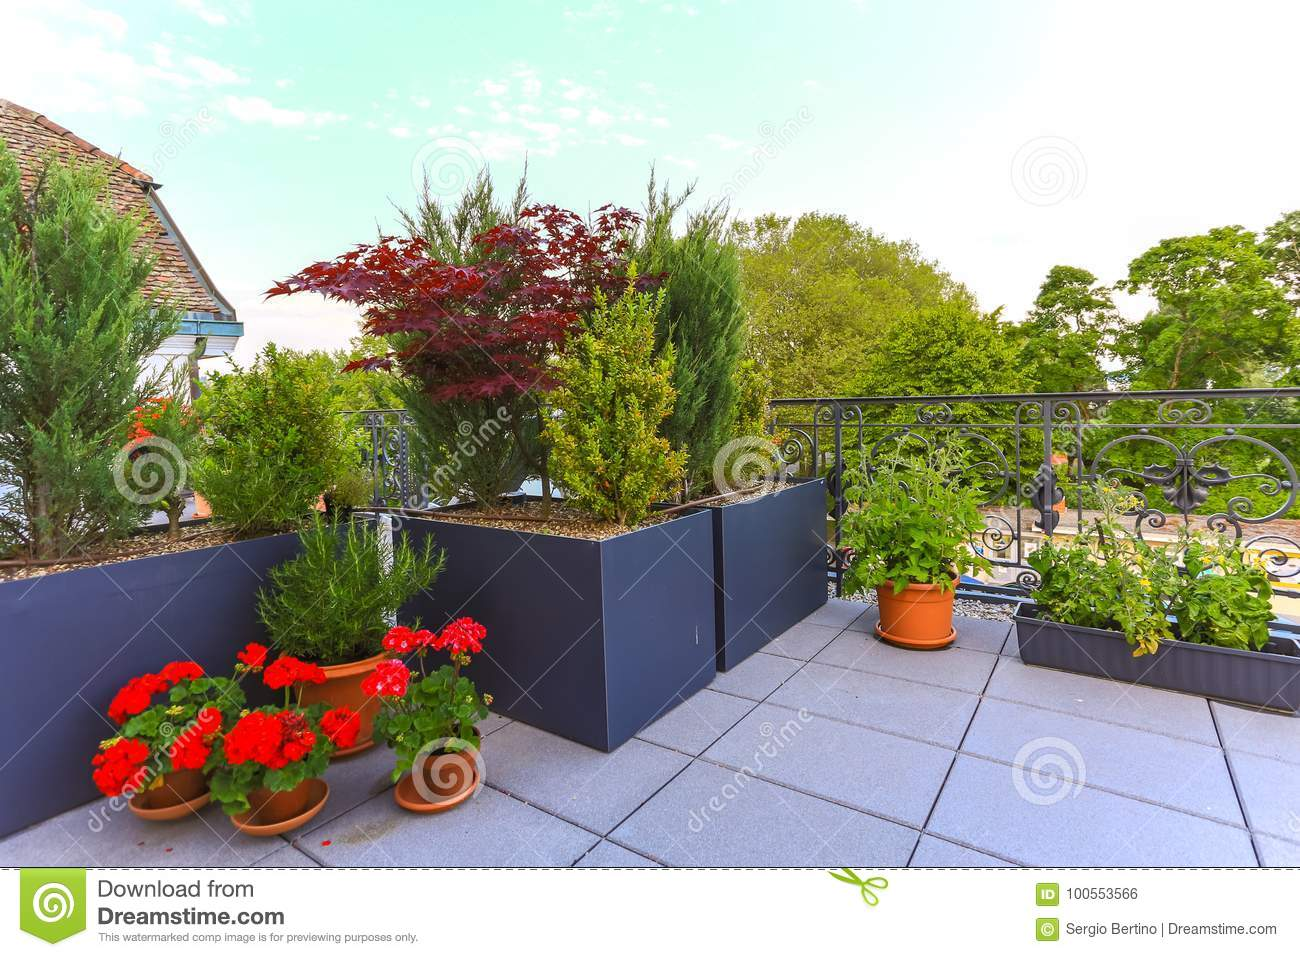 https www dreamstime com decorative potted plants growing patio decorative potted plants growing outdoor terrace patio colorful red image100553566